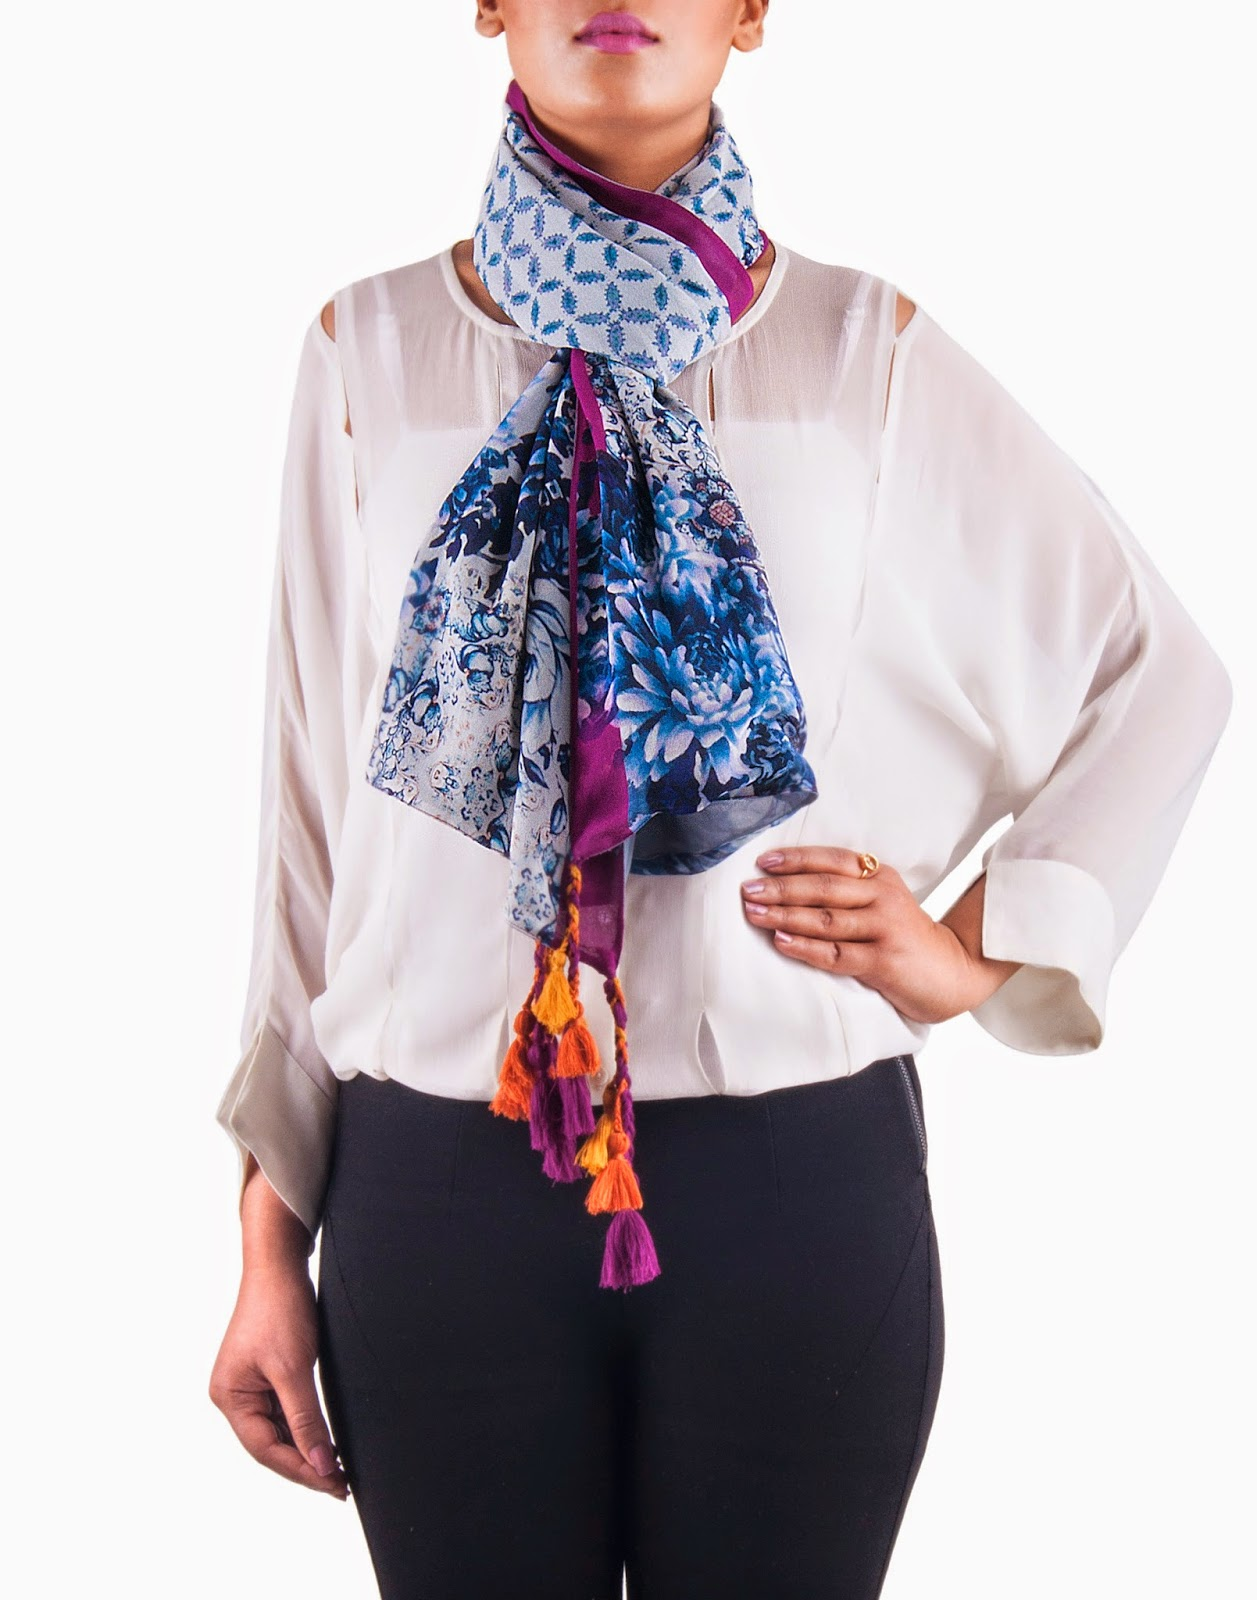 Saiesta.com launches Multi-Hued Scarves